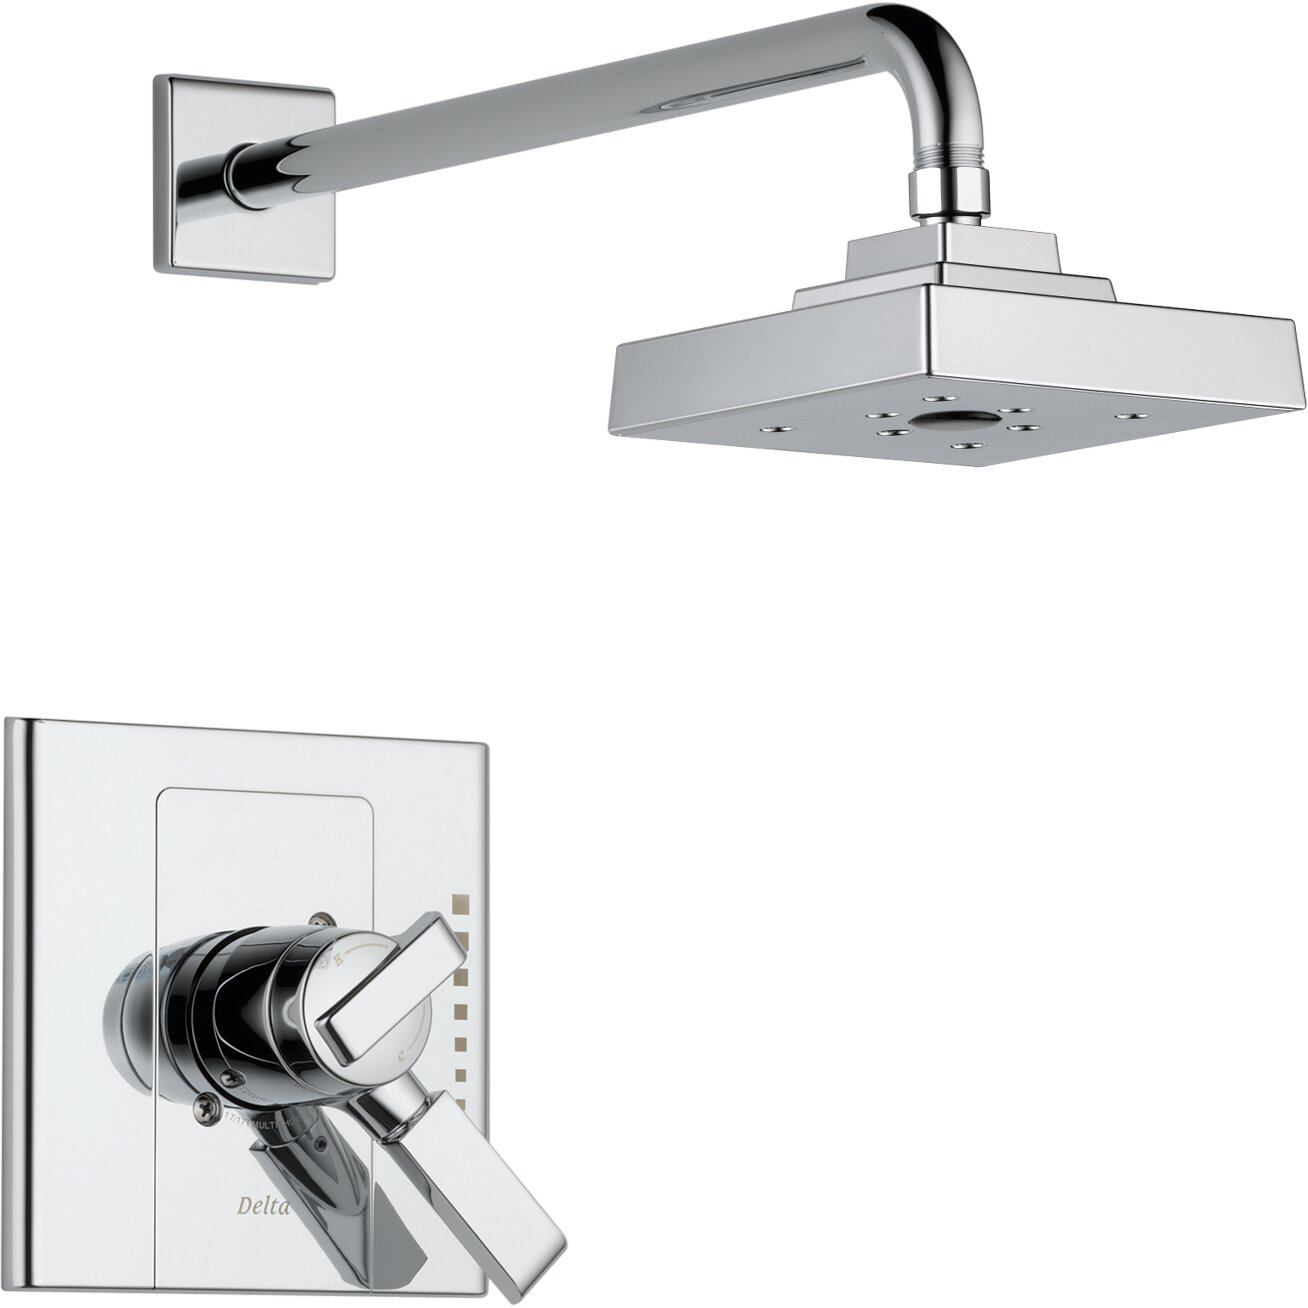 Delta Urban - Arzo Shower Faucet Trim with Lever Handles & Reviews ... - Delta Urban - Arzo Shower Faucet Trim with Lever Handles